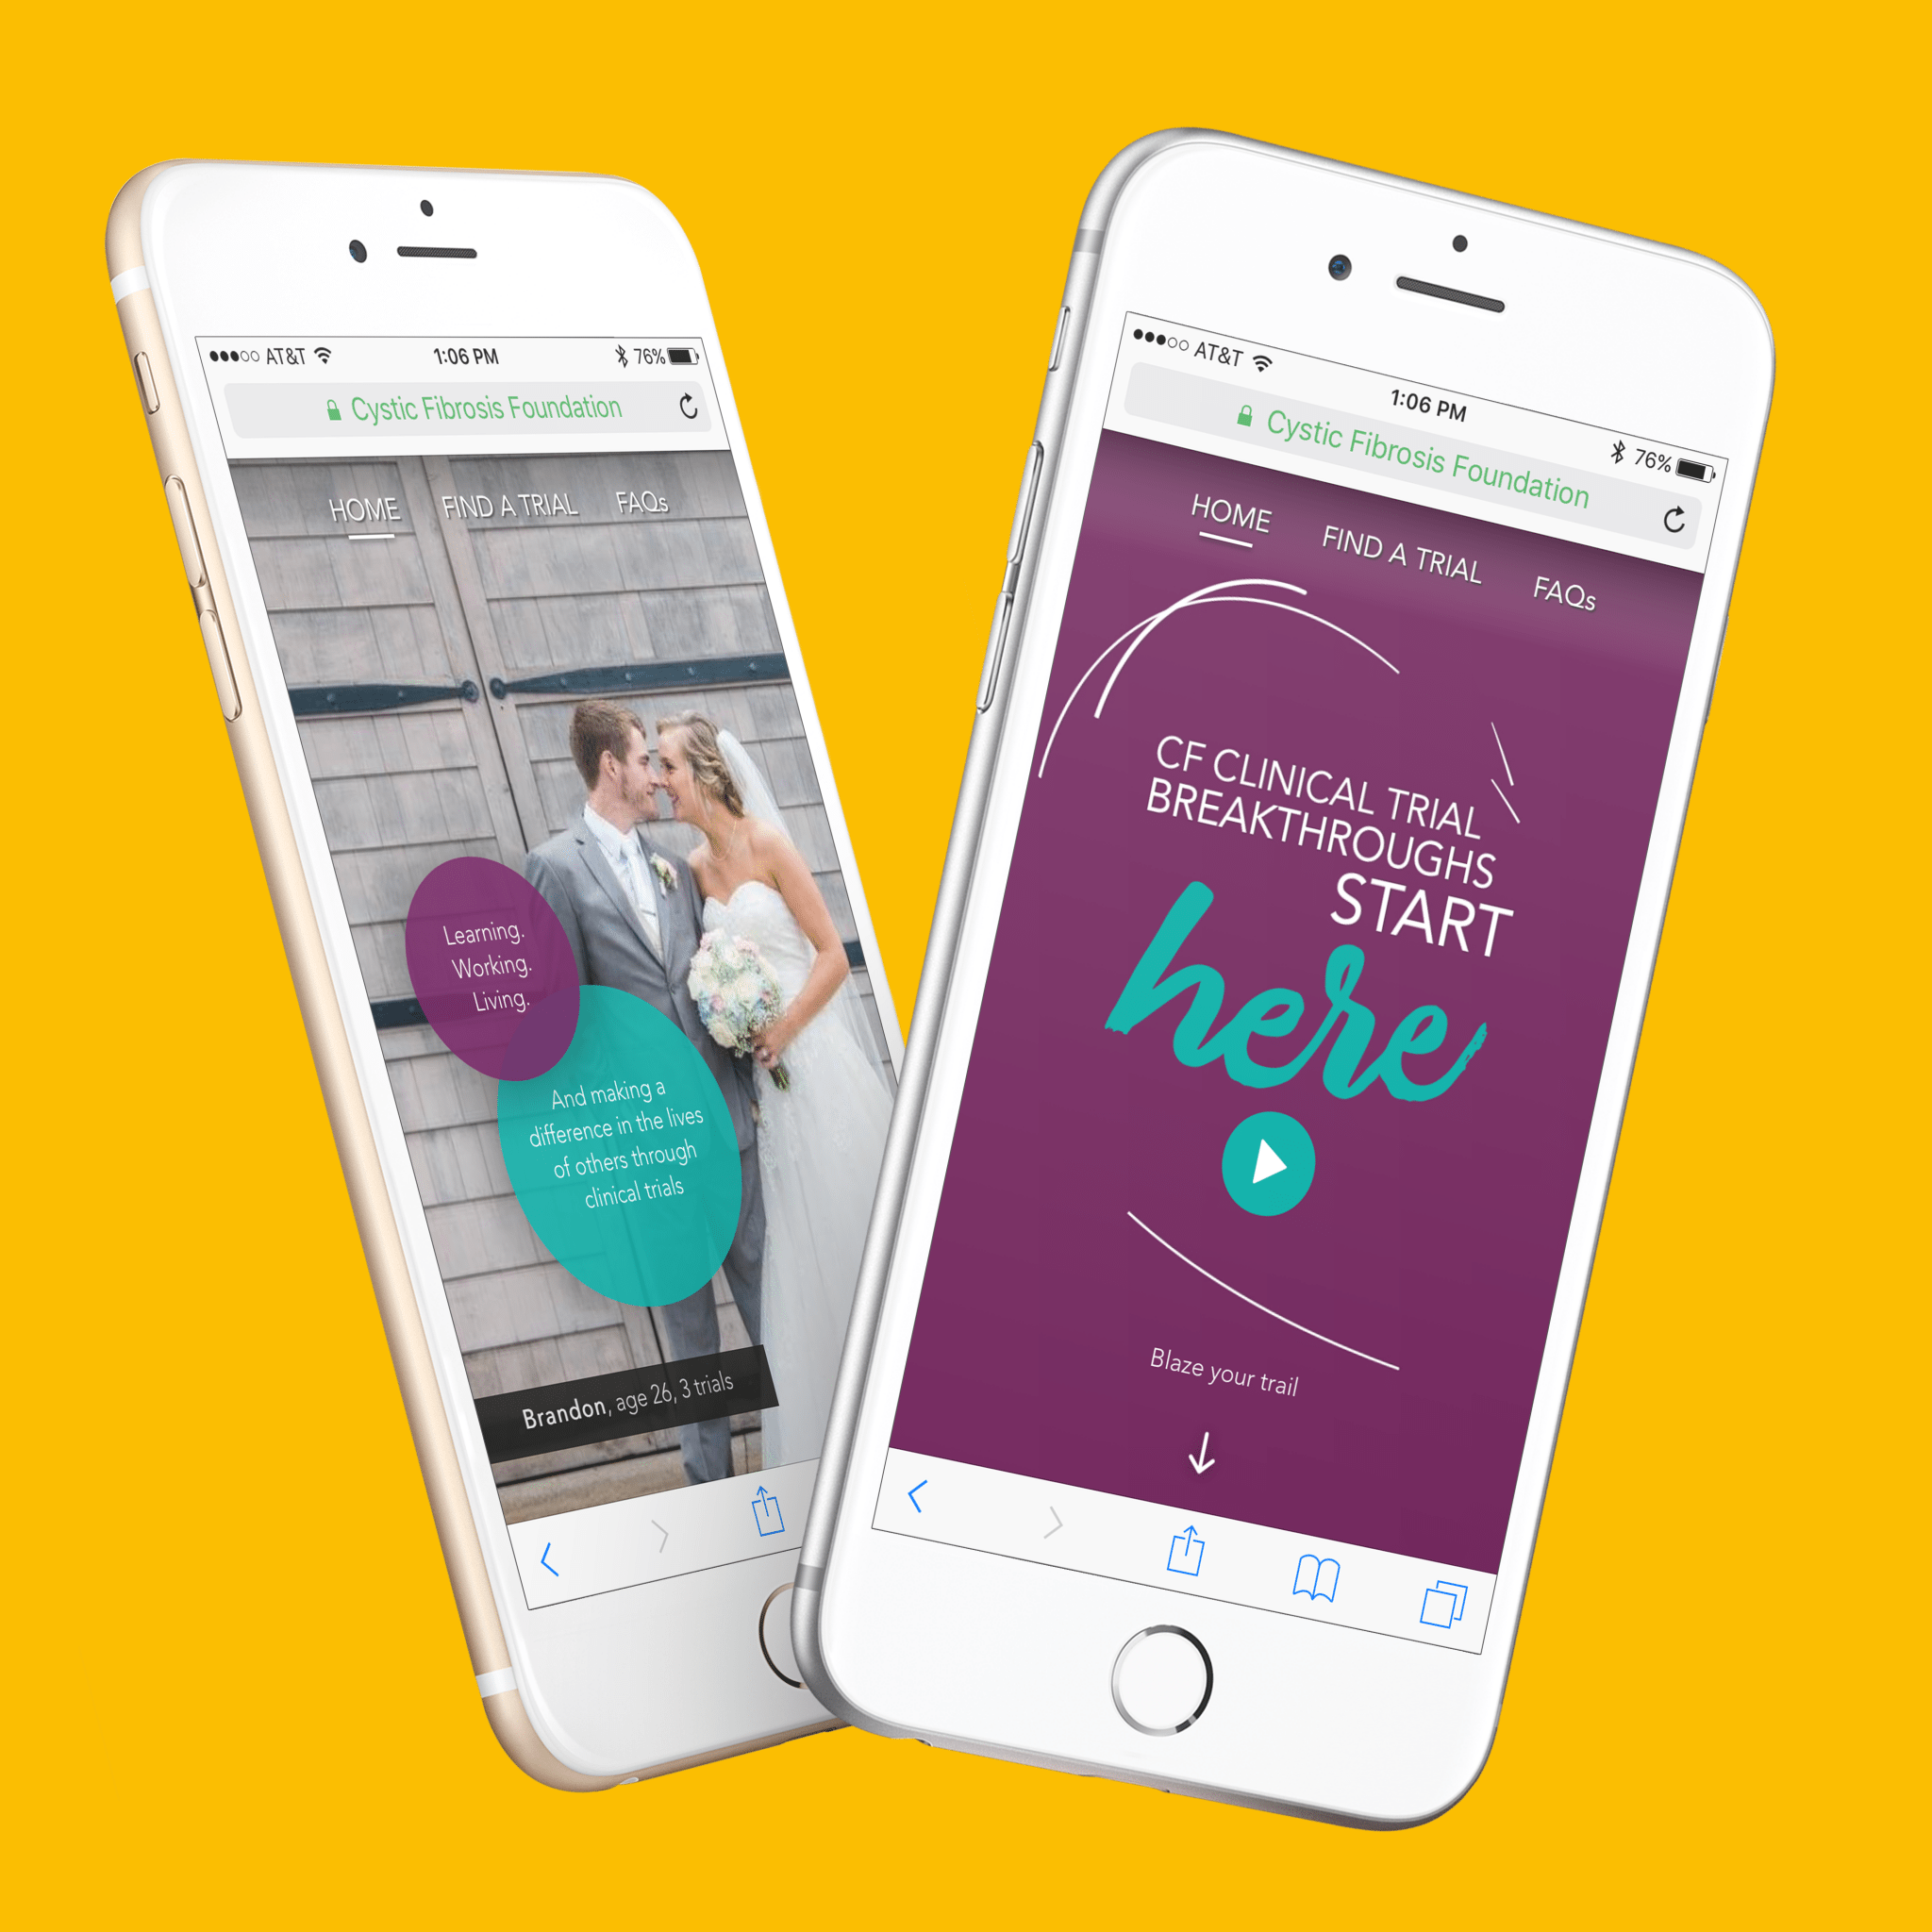 Mock-up of mobile-first responsive site for CFF created and developed by D.C. branding agency, Grafik